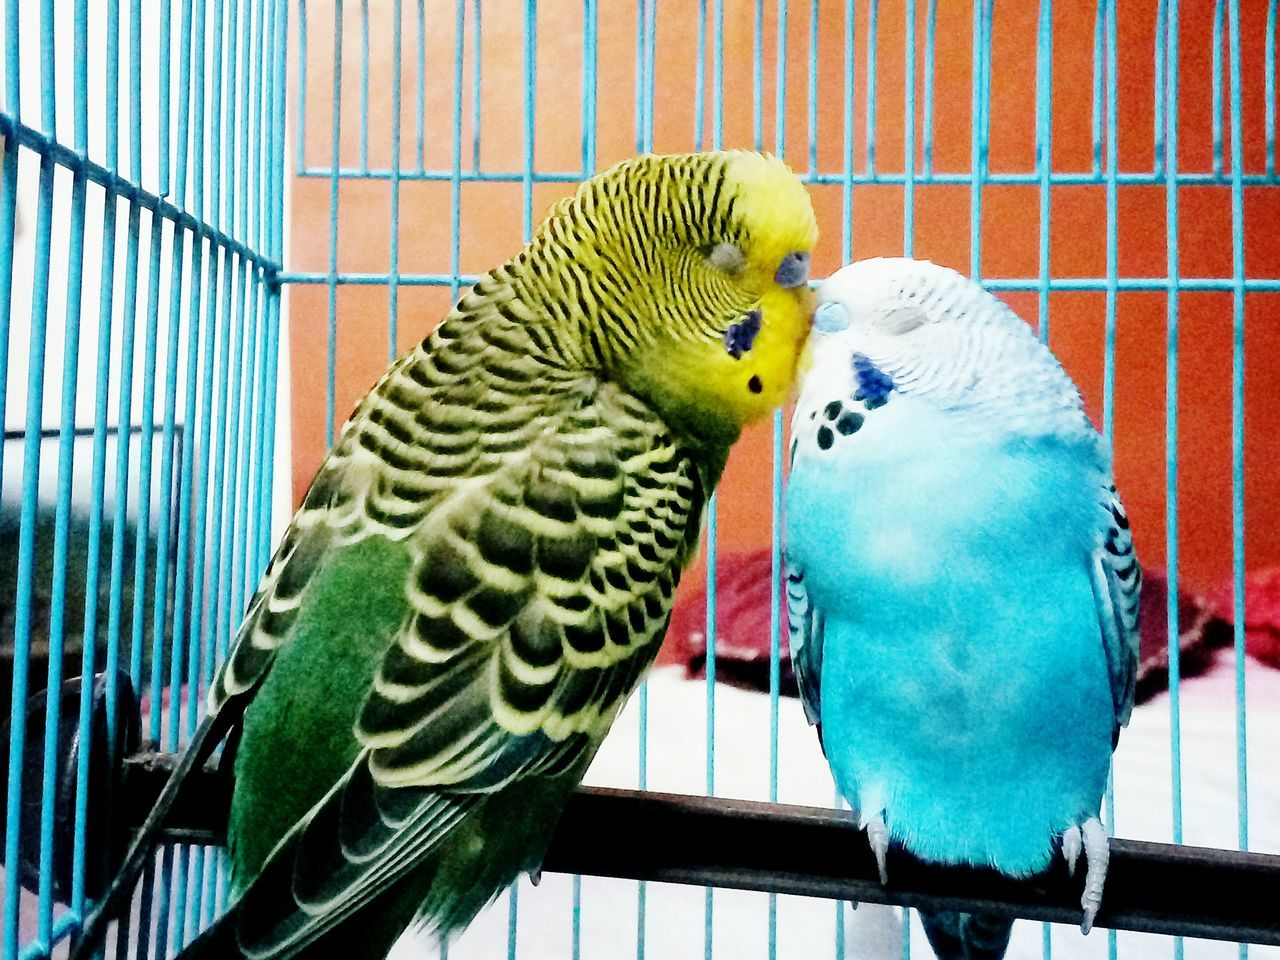 PetLover || Parakeet Animal Wildlife Love Animals💕 EyeEmNewHere Animal Love Pet Love Birds🐦⛅ Pets Corner Love In The Air Love In The Air 💚 Animals In The Wild